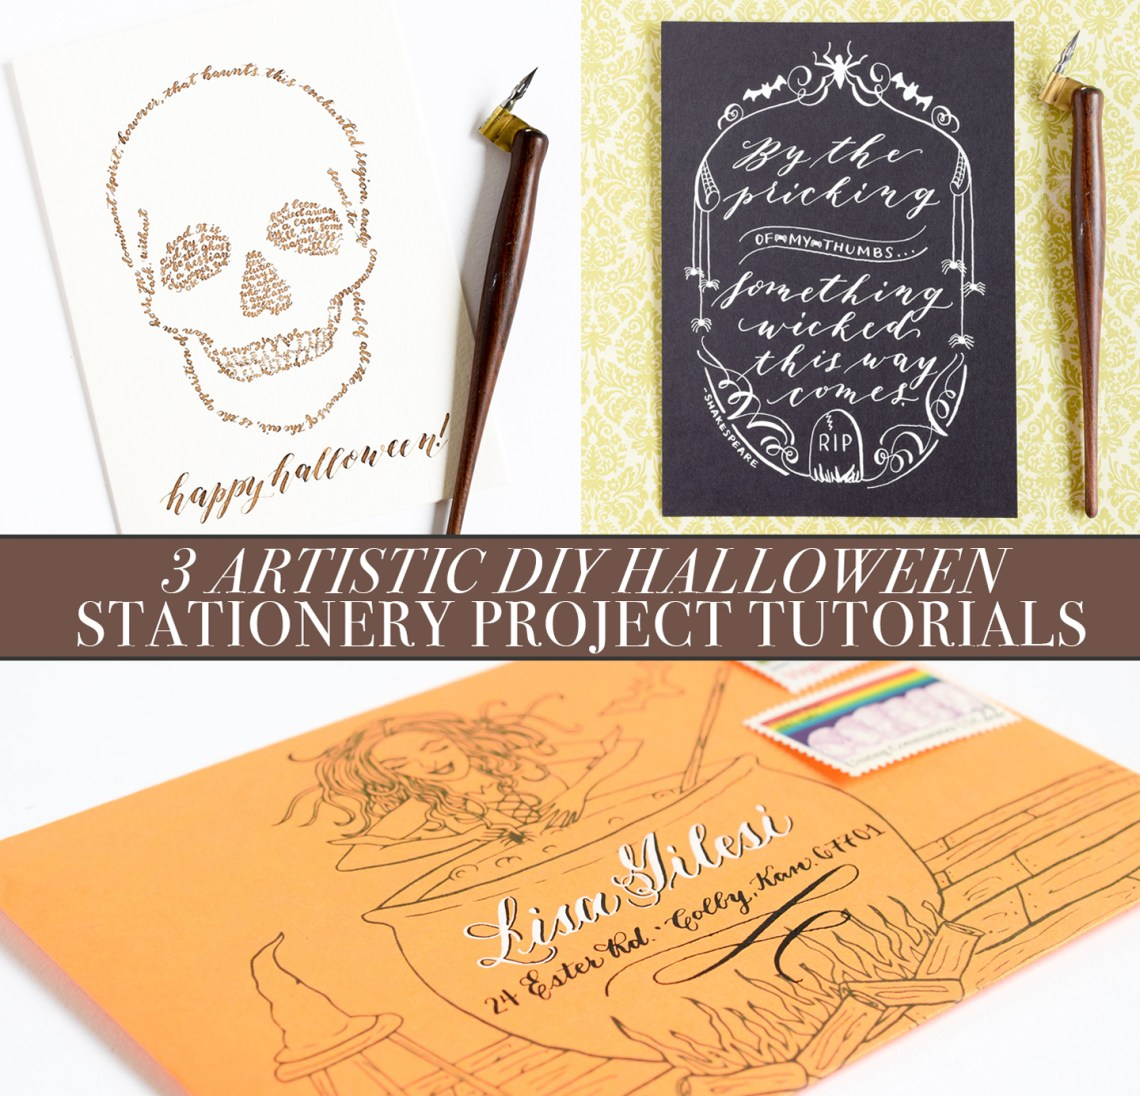 3 Artistic DIY Halloween Stationery Projects | The Postman's Knock